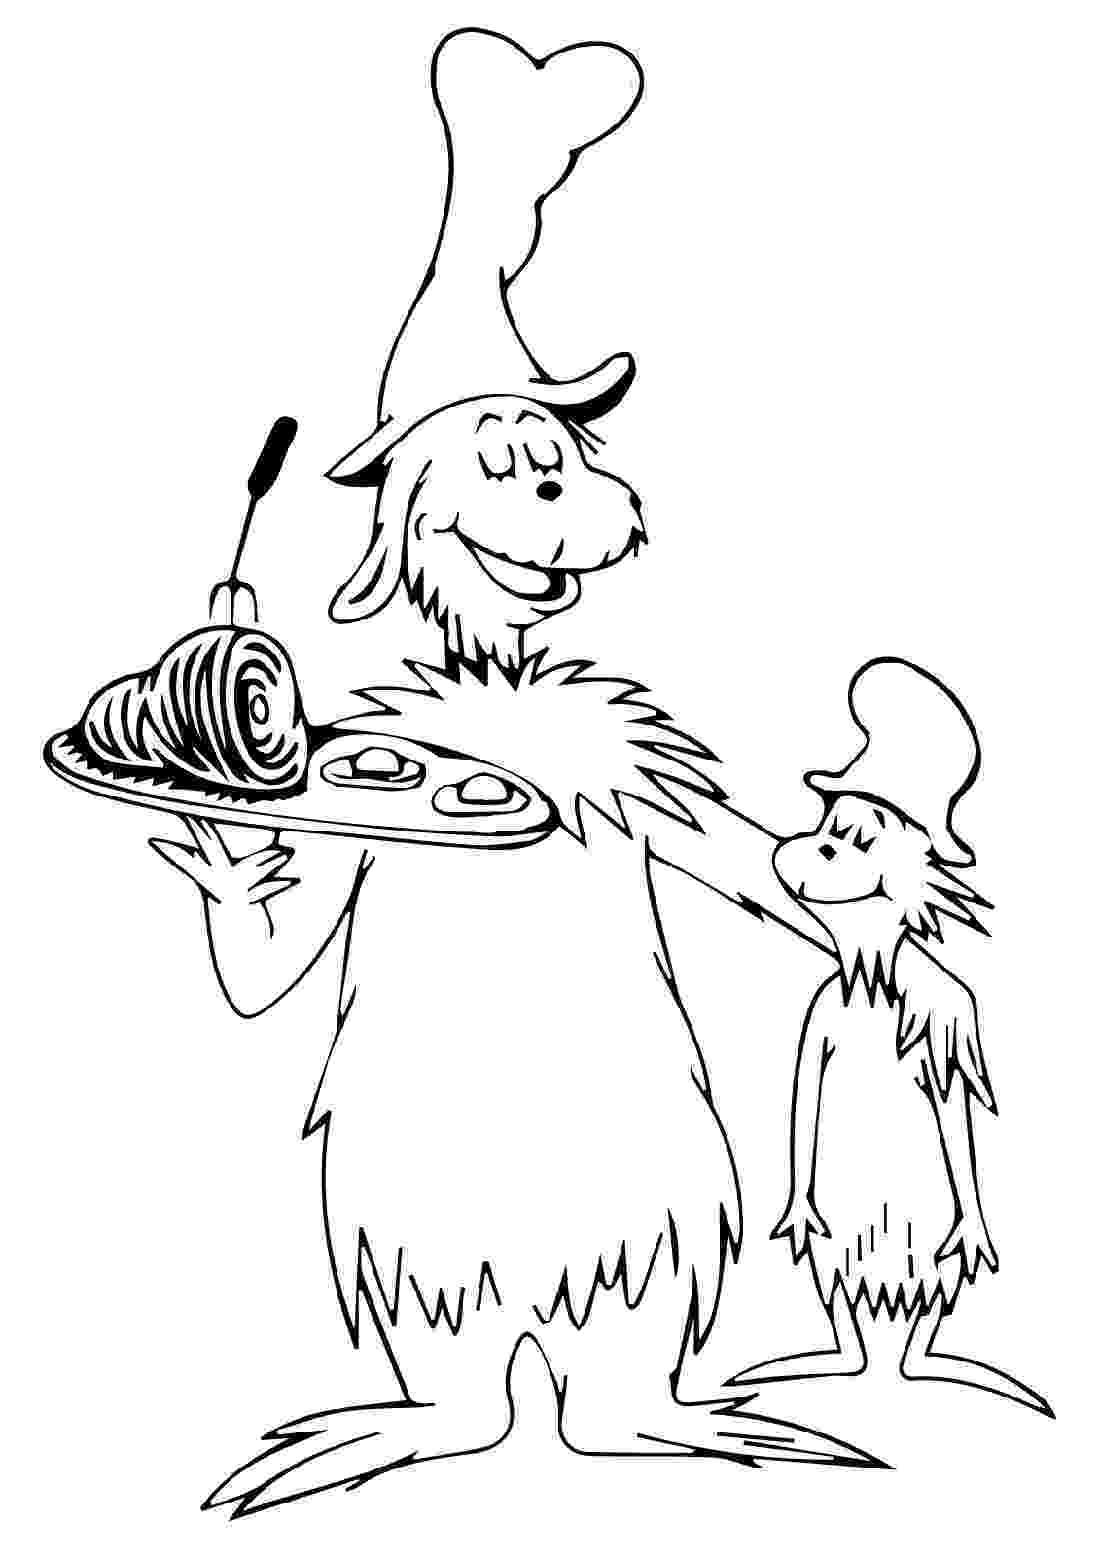 green eggs and ham coloring dr seuss green eggs and ham coloring pages six eggs and ham eggs coloring green and